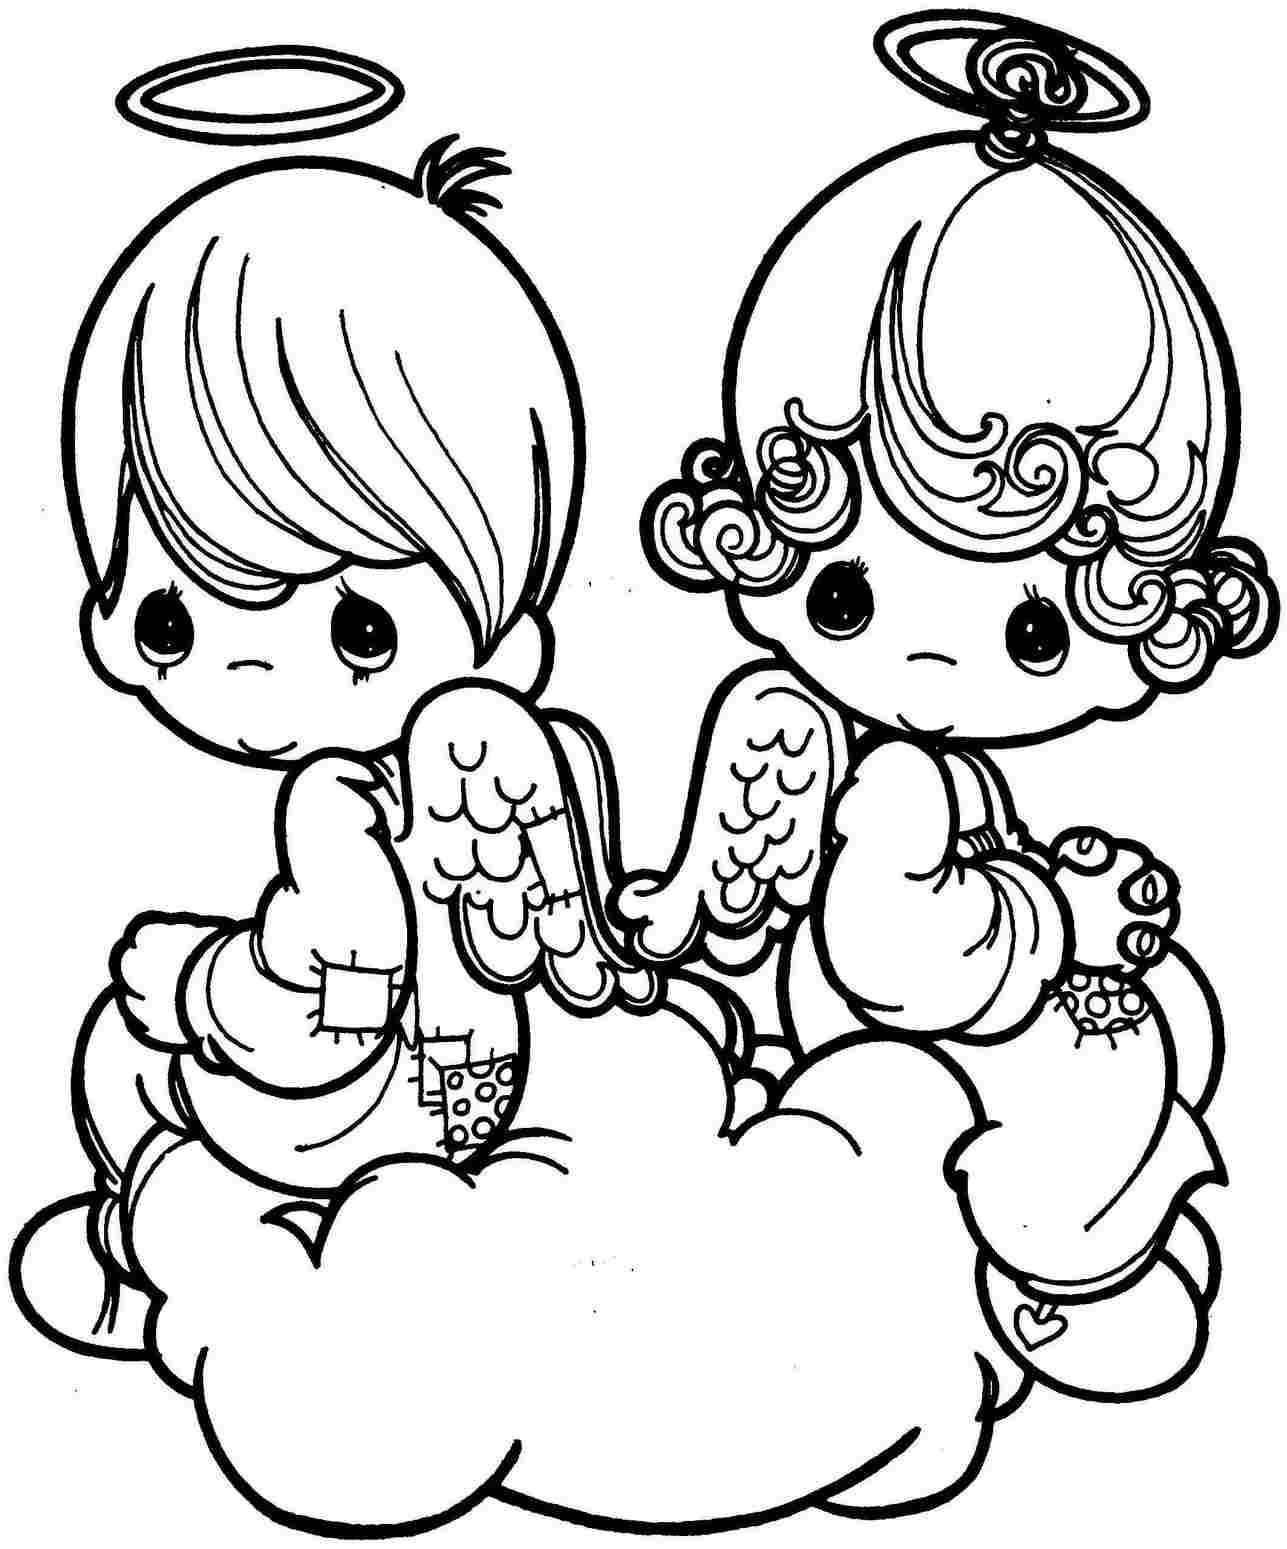 Free valentines day coloring pages to print - Free Printable Valentines Day Coloring Pages